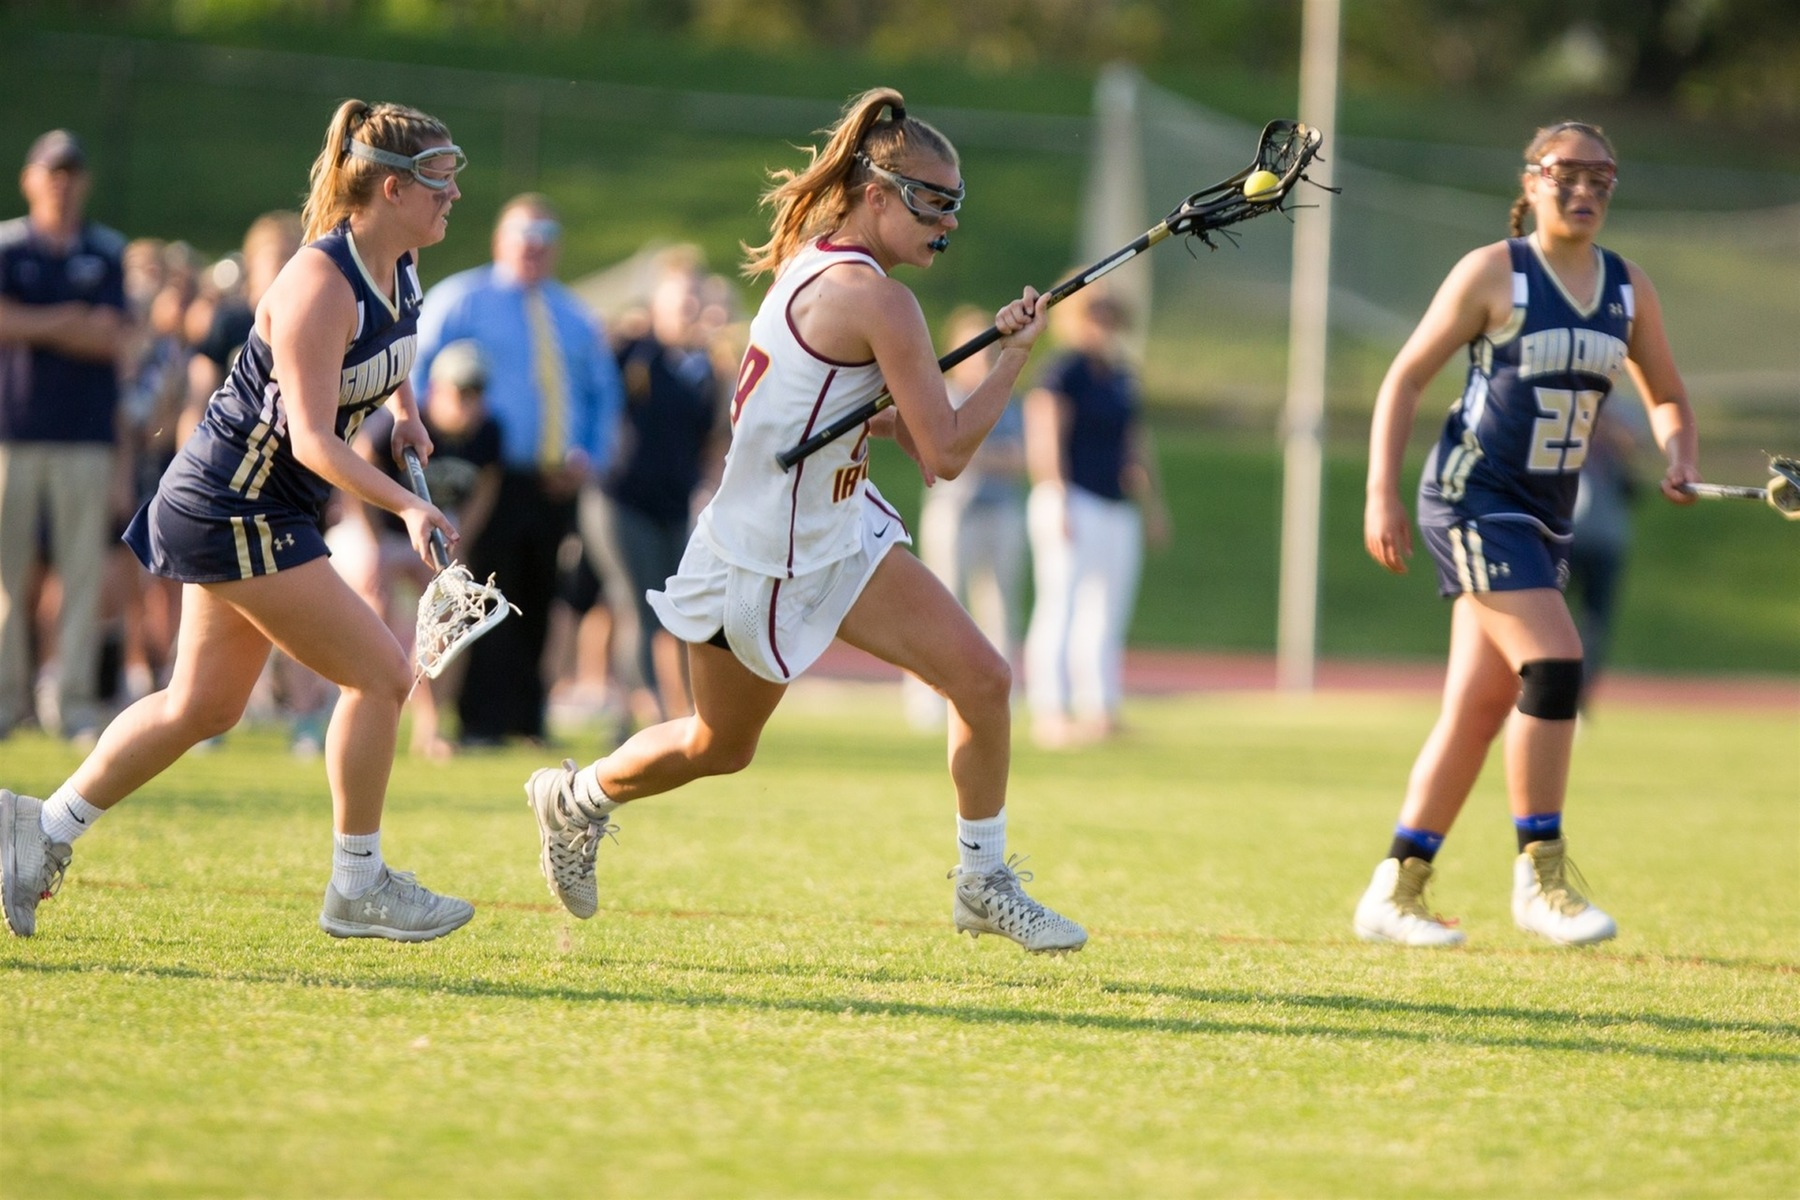 Bishop Ireton will go for its 4th Straight Girl's WCAC Lacrosse Championship on Monday vs Good Counsel.